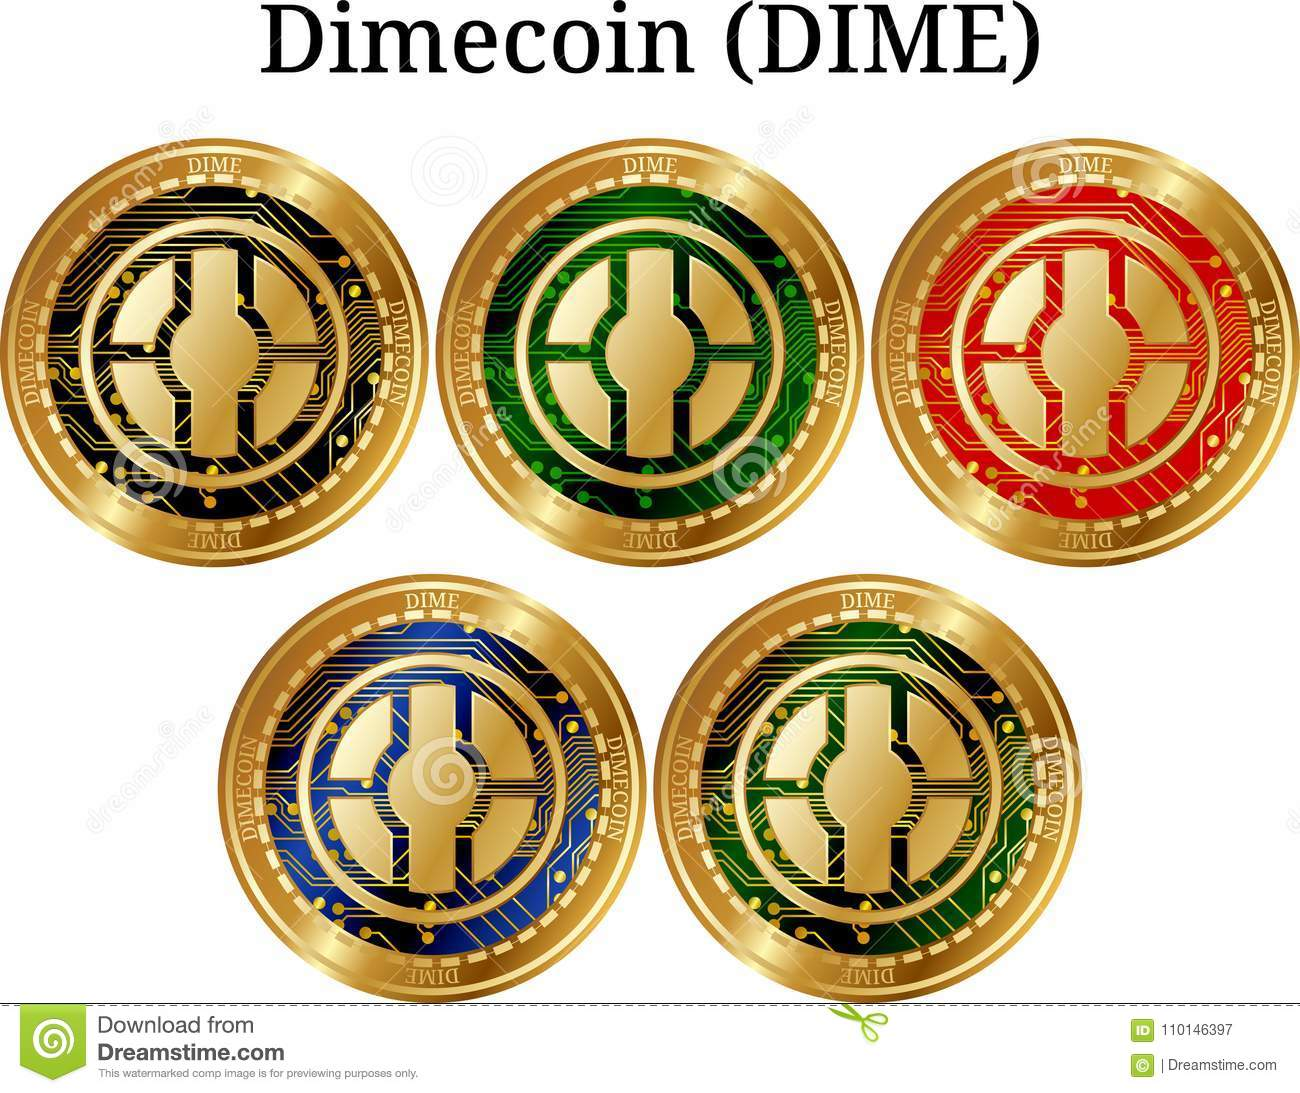 Dime coin cryptocurrency rbc heritage betting odds